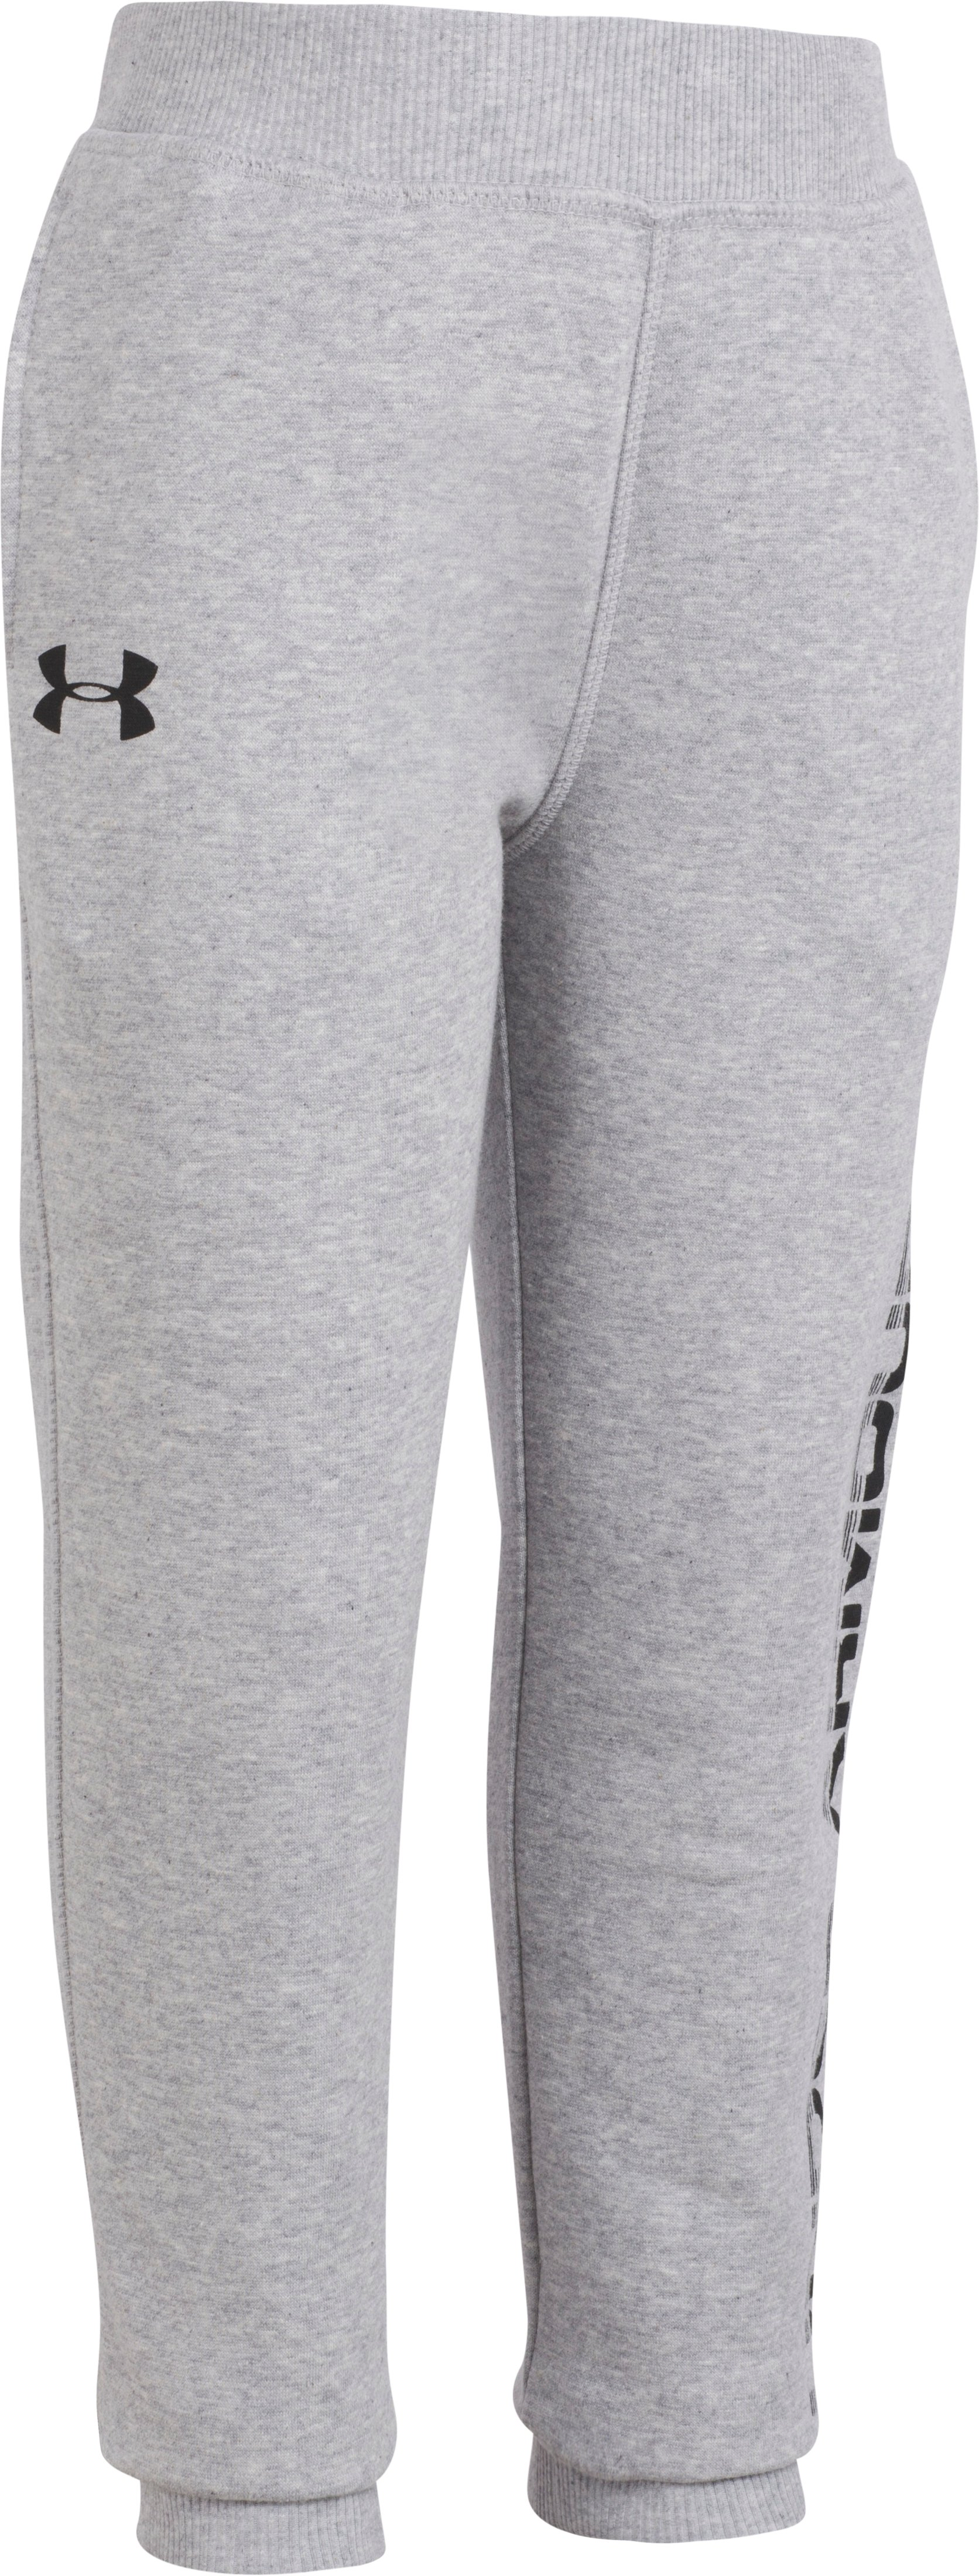 Boys' Pre-School UA Threadborne Joggers, True Gray Heather